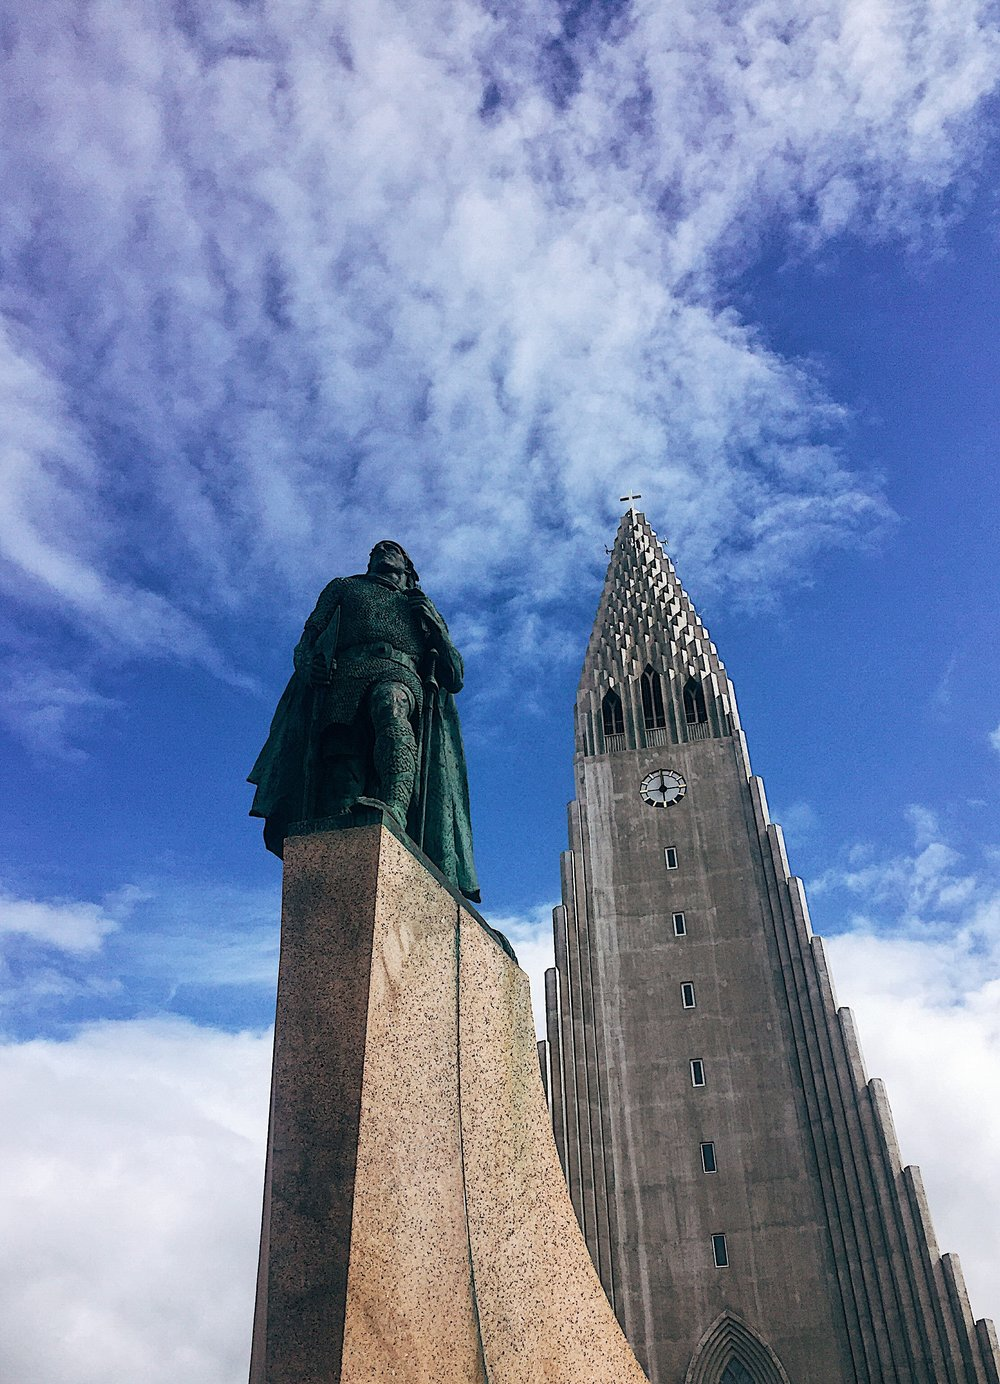 Viking and Christian contrast. Hallgrímskirkja, the tallest church in Iceland with Leif Eriksson, explorer.